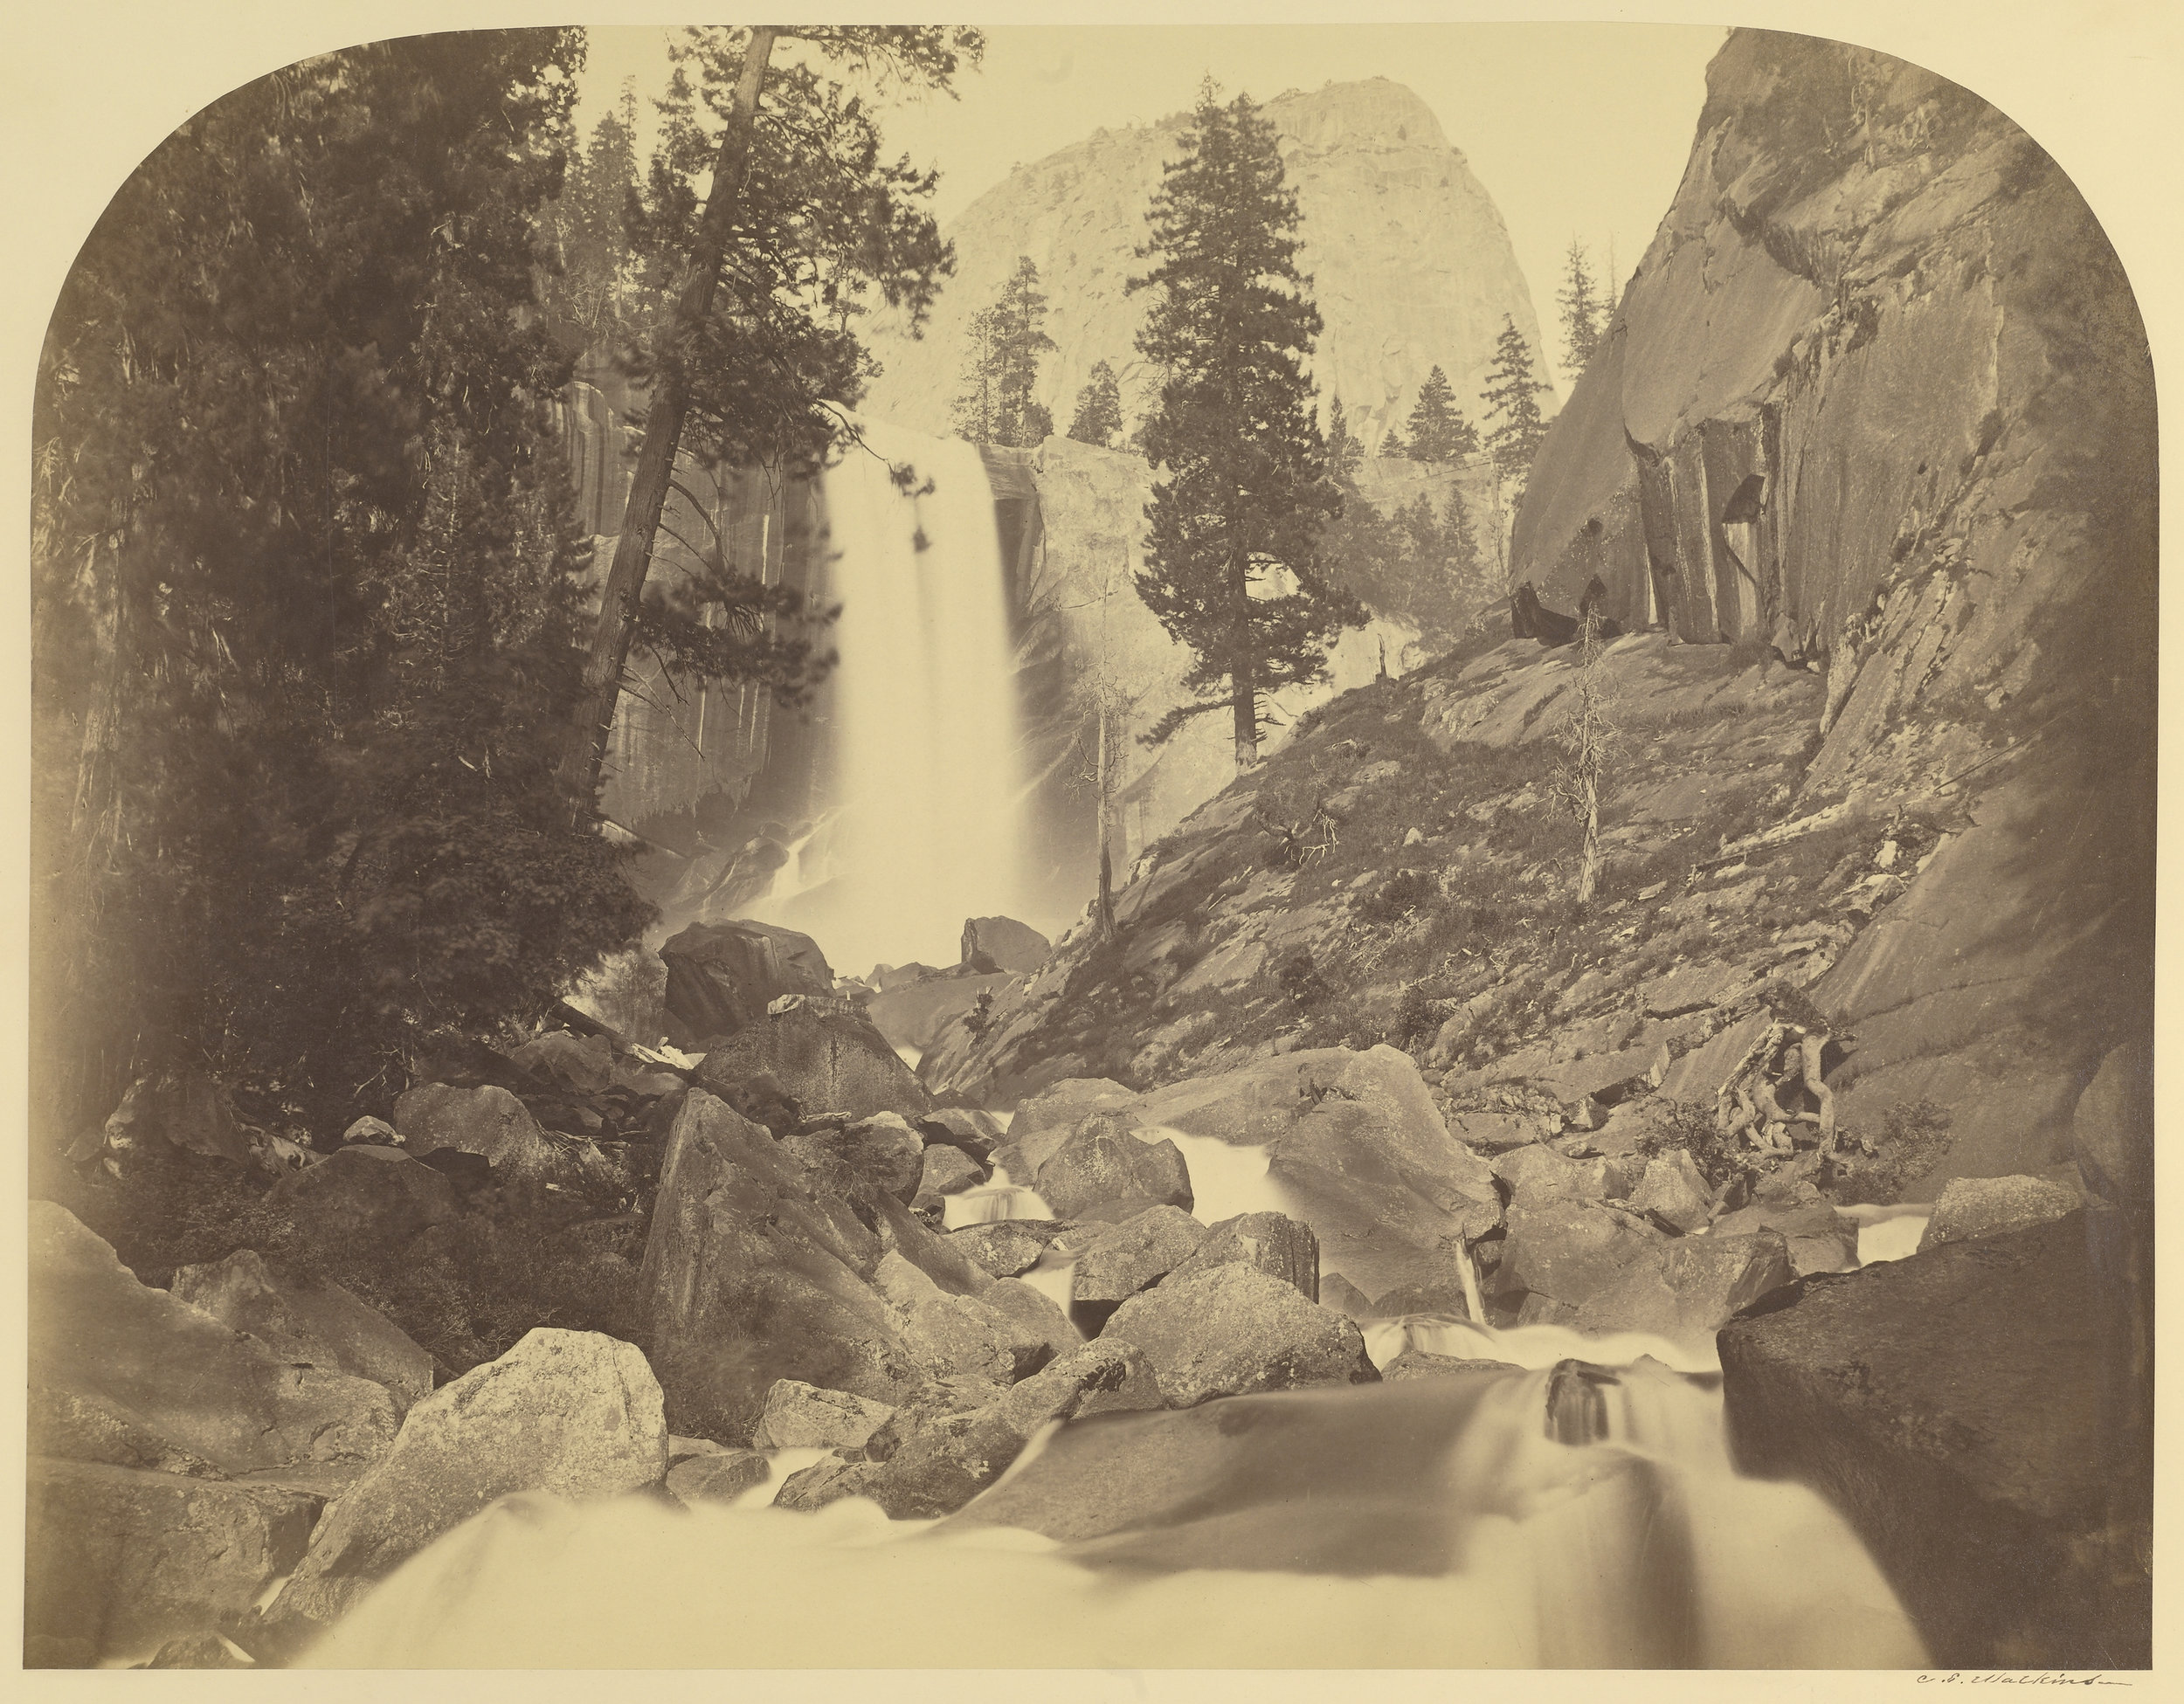 Carleton Watkins (American, 1829 - 1916)  [Piwayac - Vernal Fall - 300 ft. Yo Semite] , 1861, Albumen silver print 40.2 × 52.1 cm (15 13/16 × 20 1/2 in.) The J. Paul Getty Museum, Los Angeles